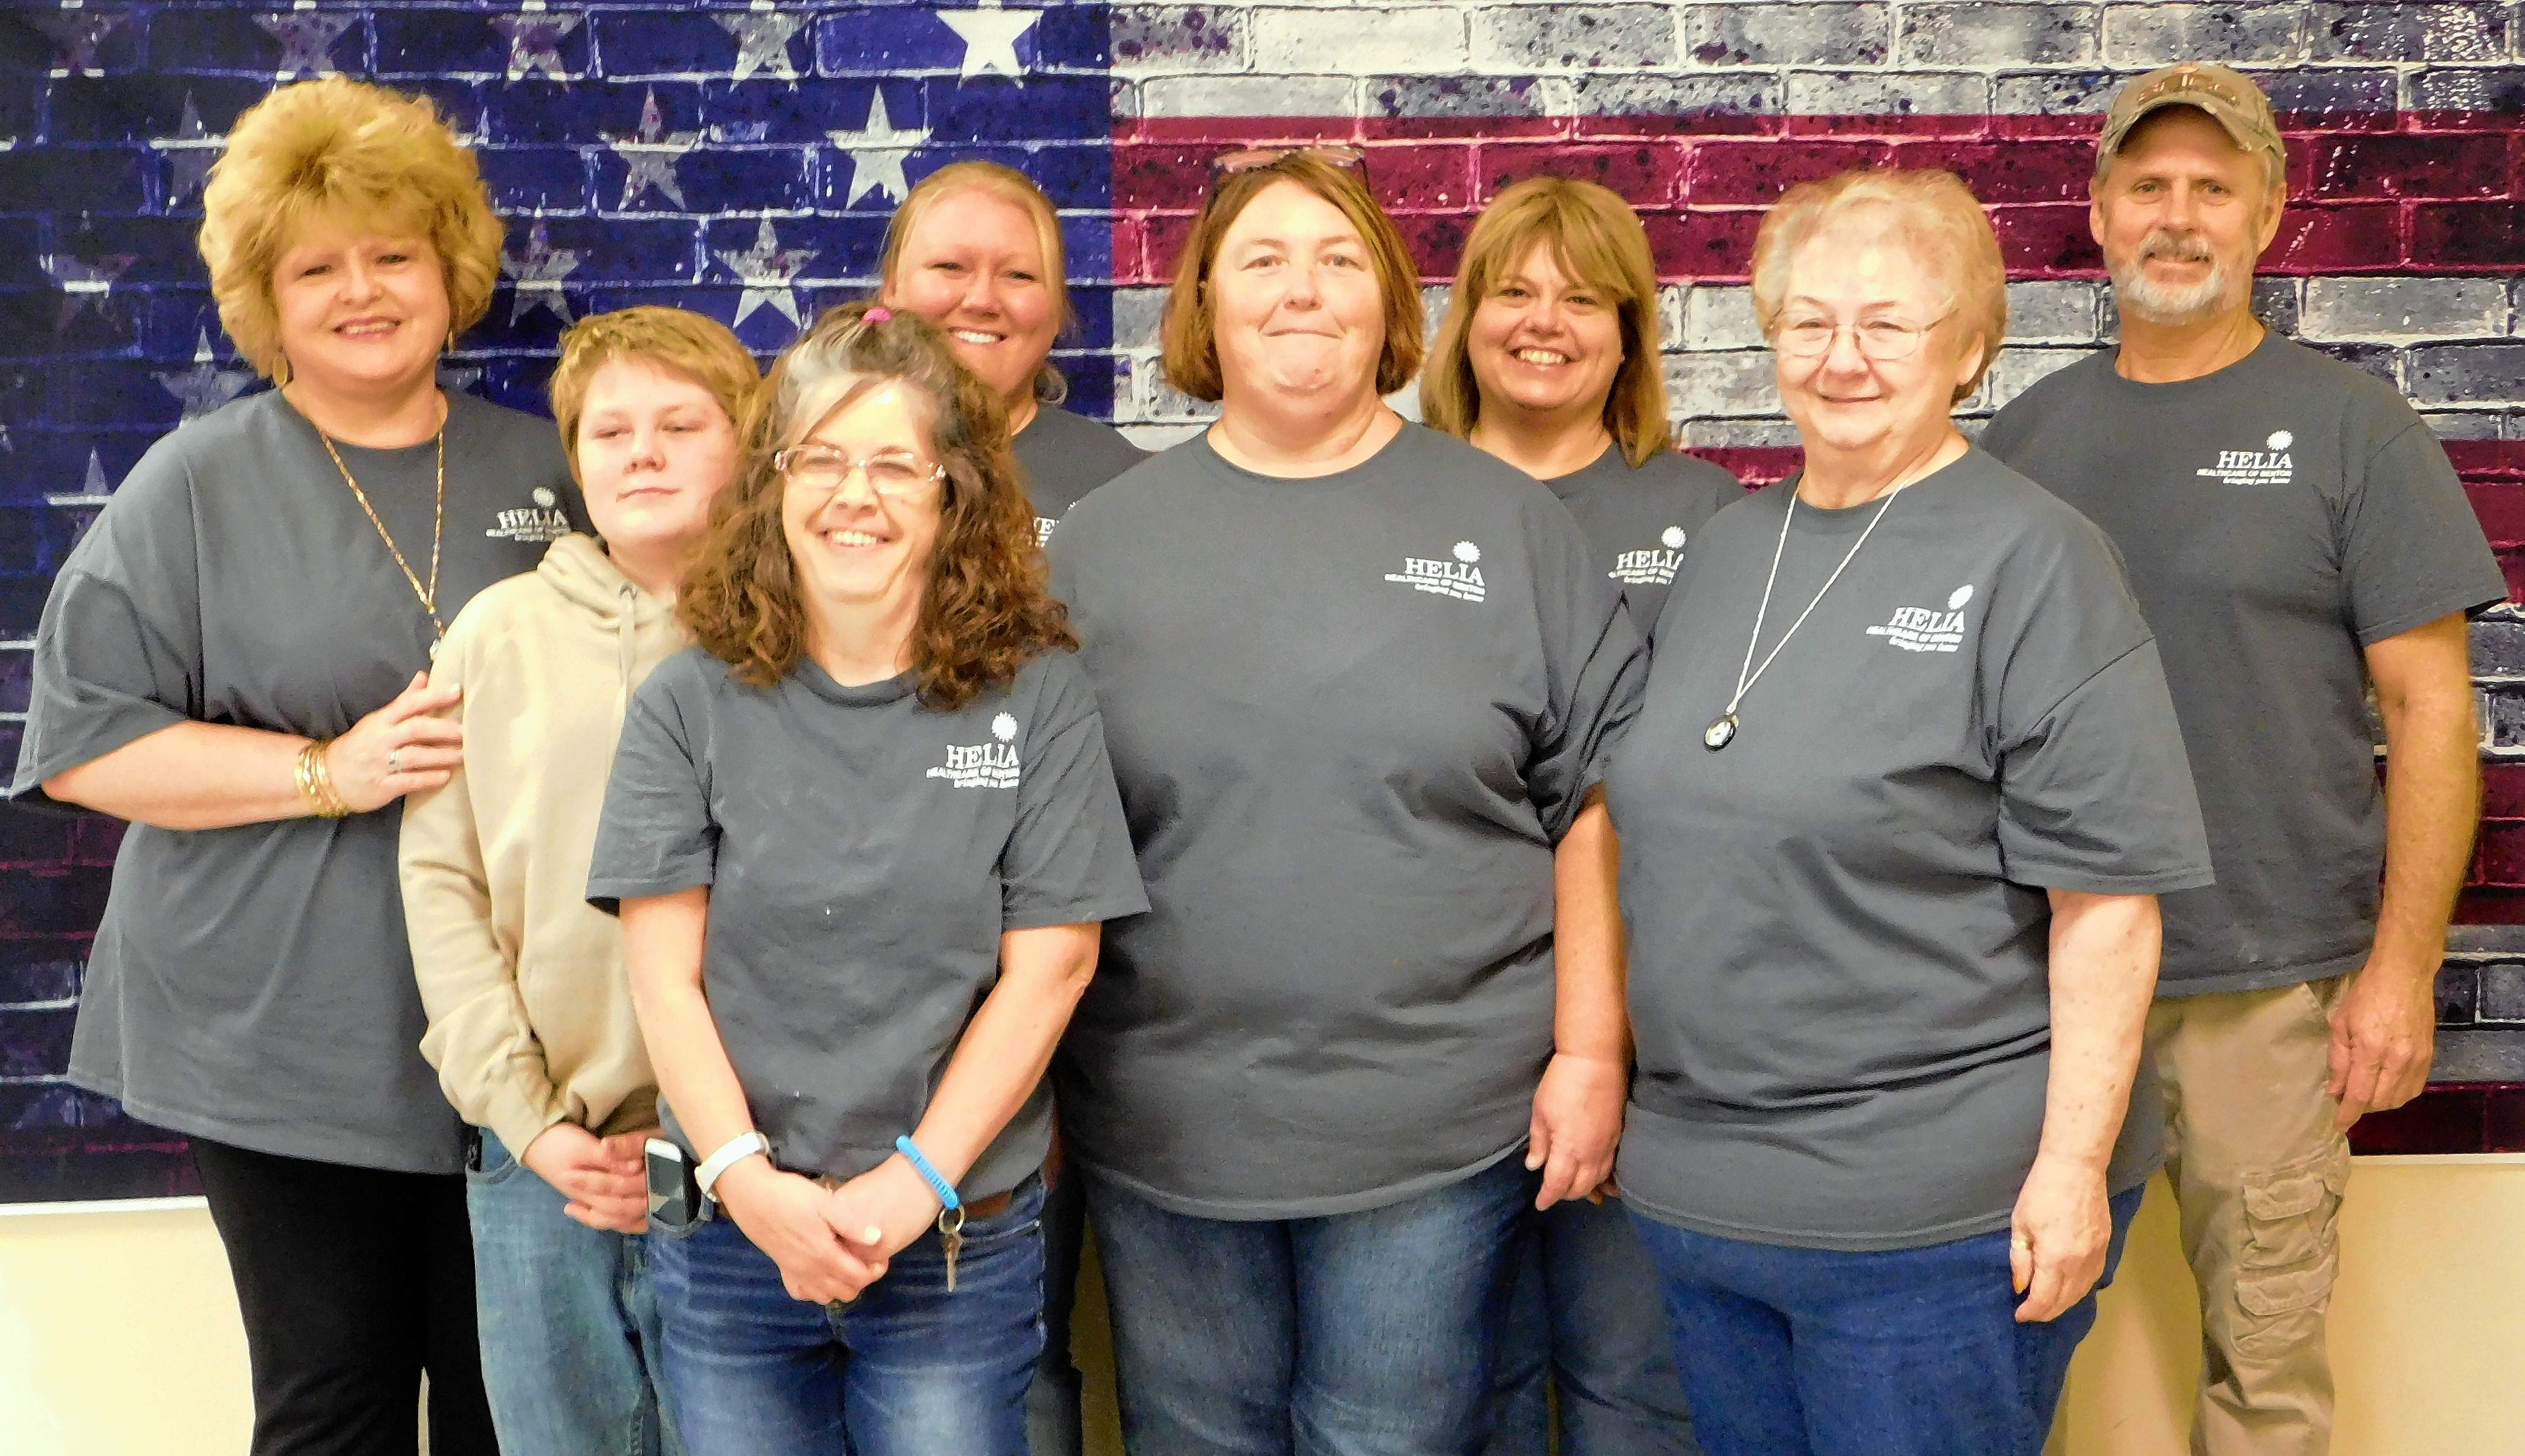 Holly Kee photoEmployees of Helia Healthcare of Benton spent the morning preparing a complimentary lunch of chili and hotdogs for the Veterans and their guests.